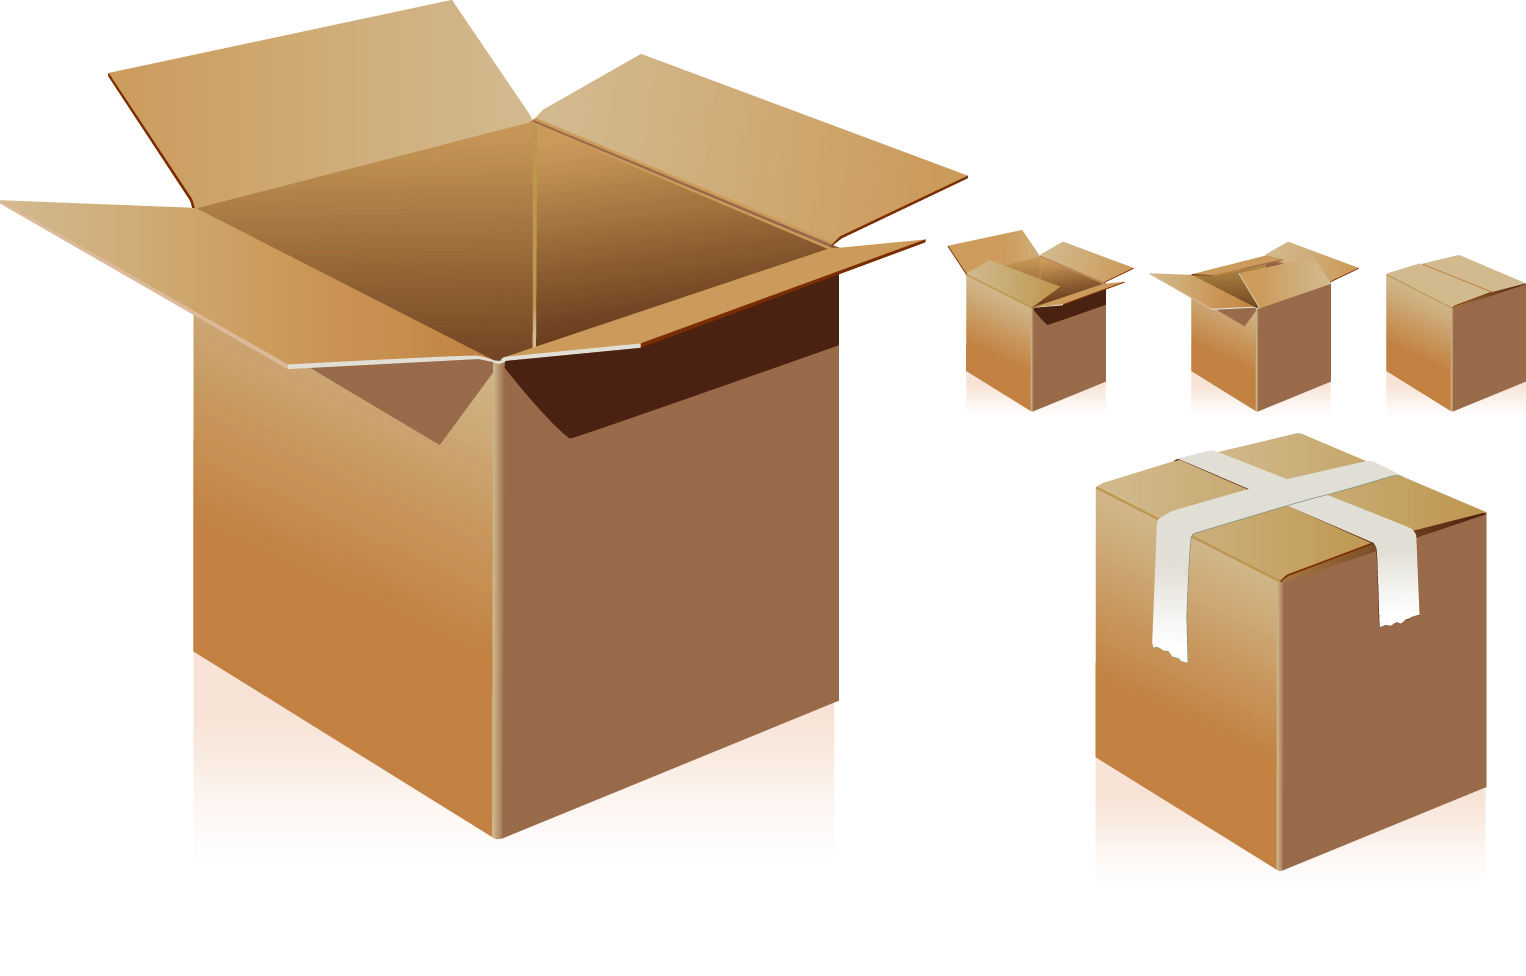 Boxes vector image.